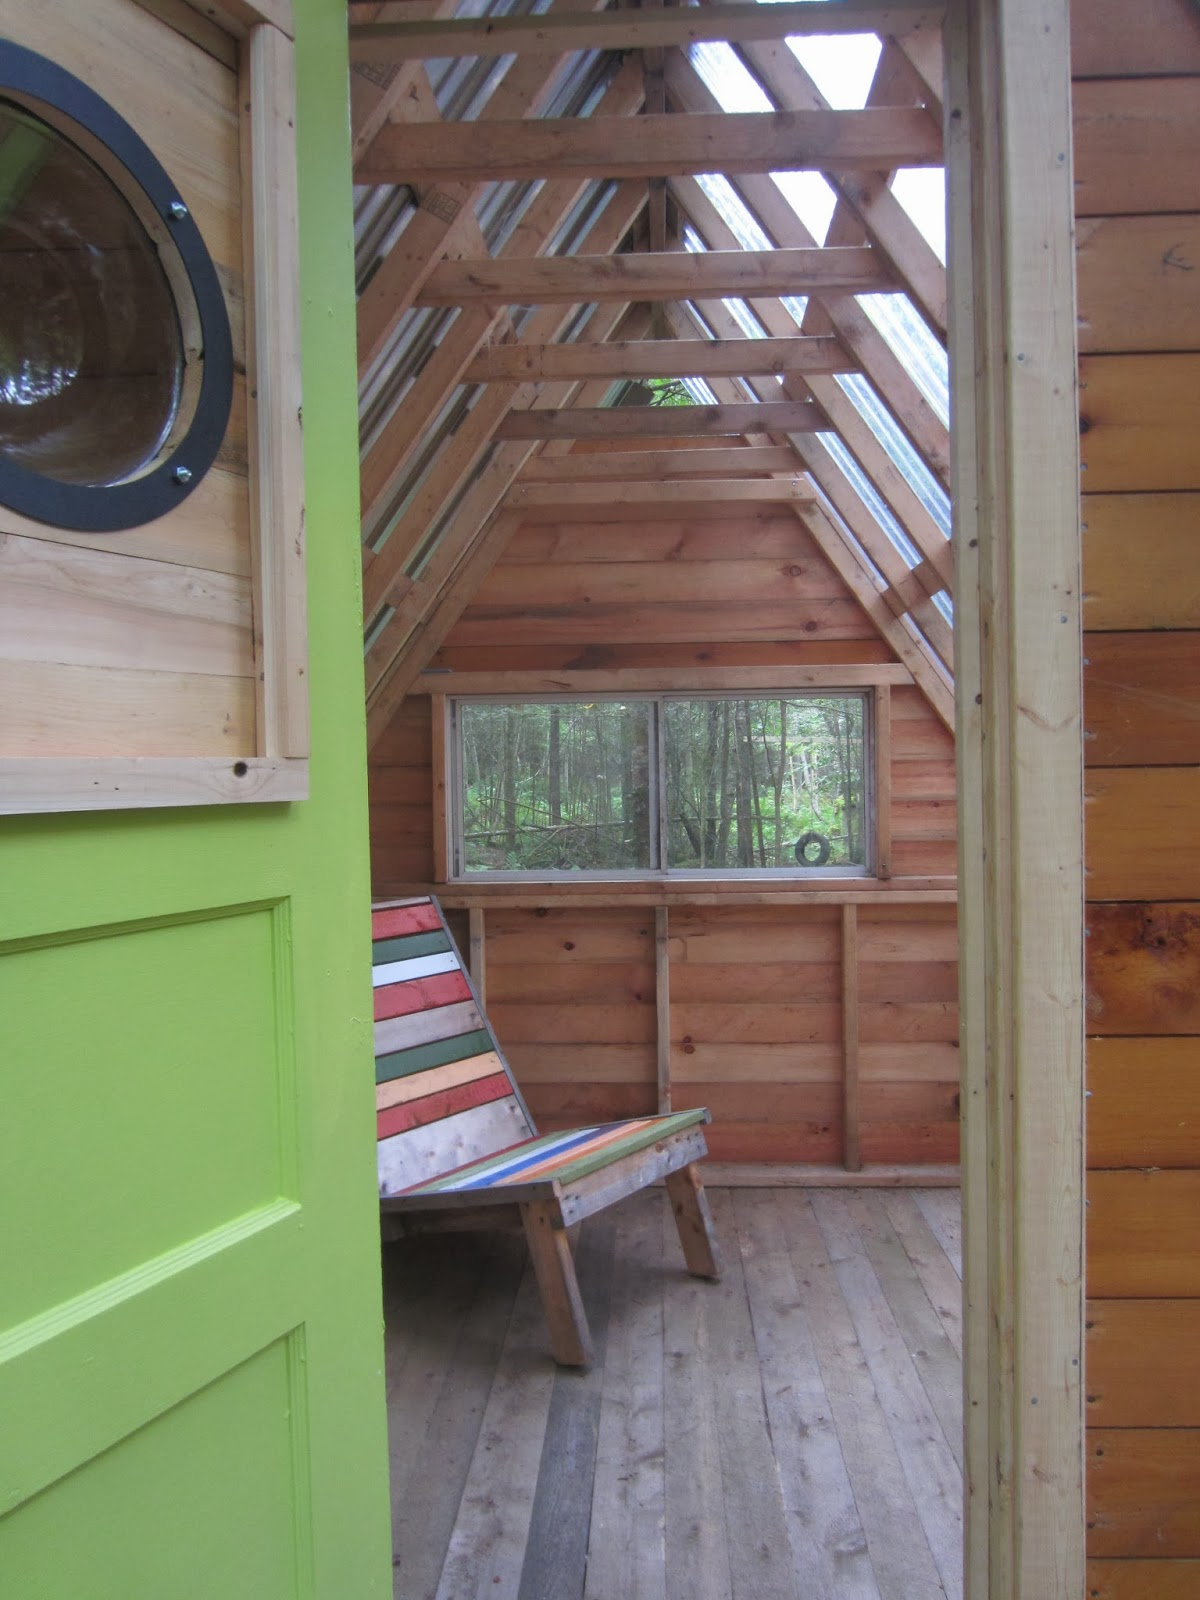 Relaxshacks com: Whimsical and Without Much Wampum- Tiny